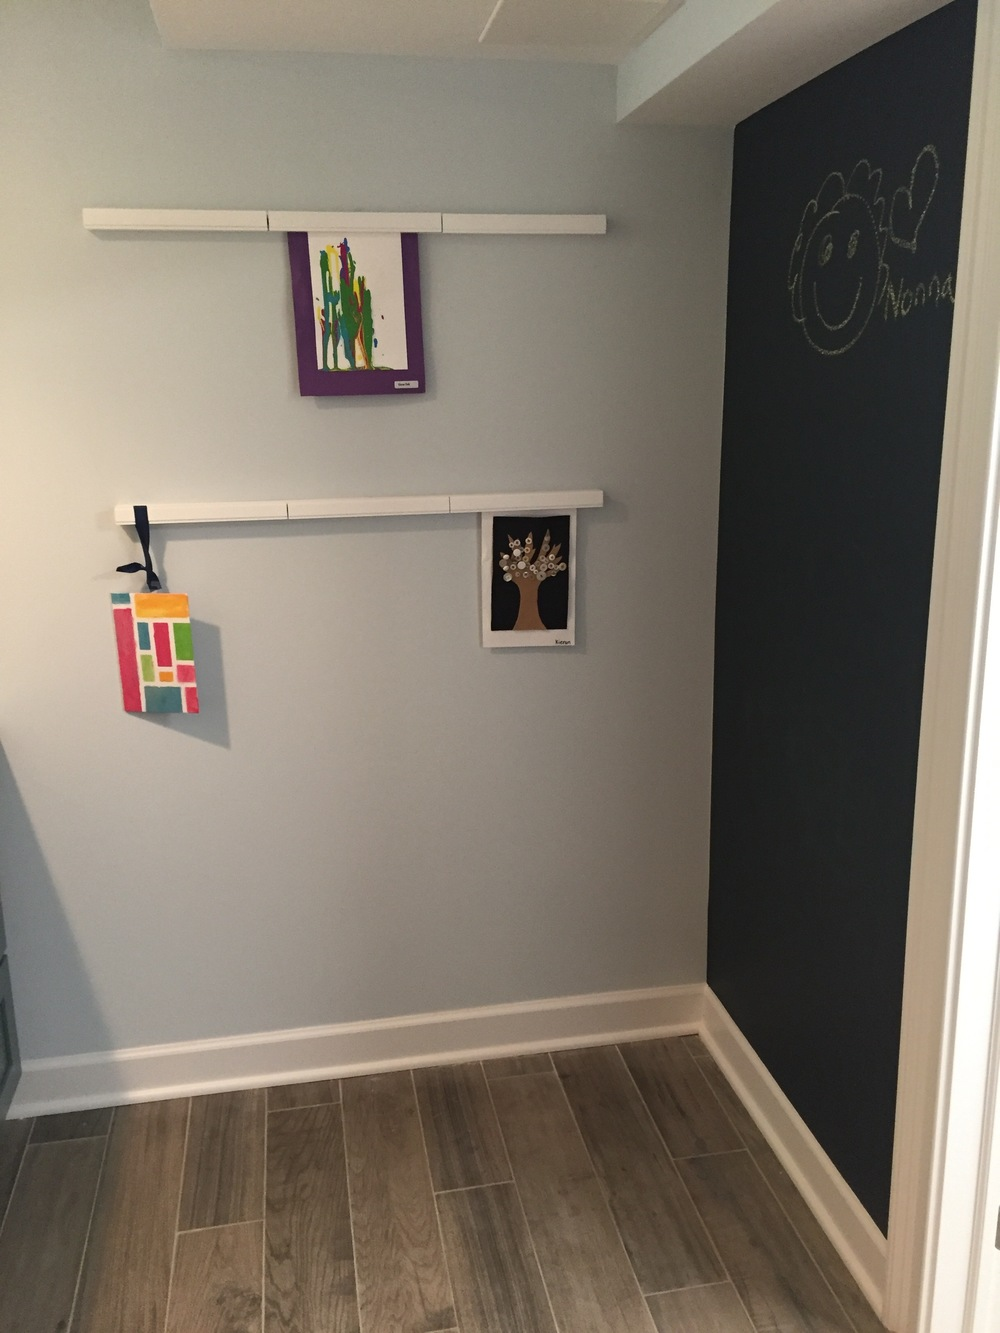 Wall-mounted racks have magnetic locks to hang dry art projects. A chalk-board wall completes the 42 square foot space.